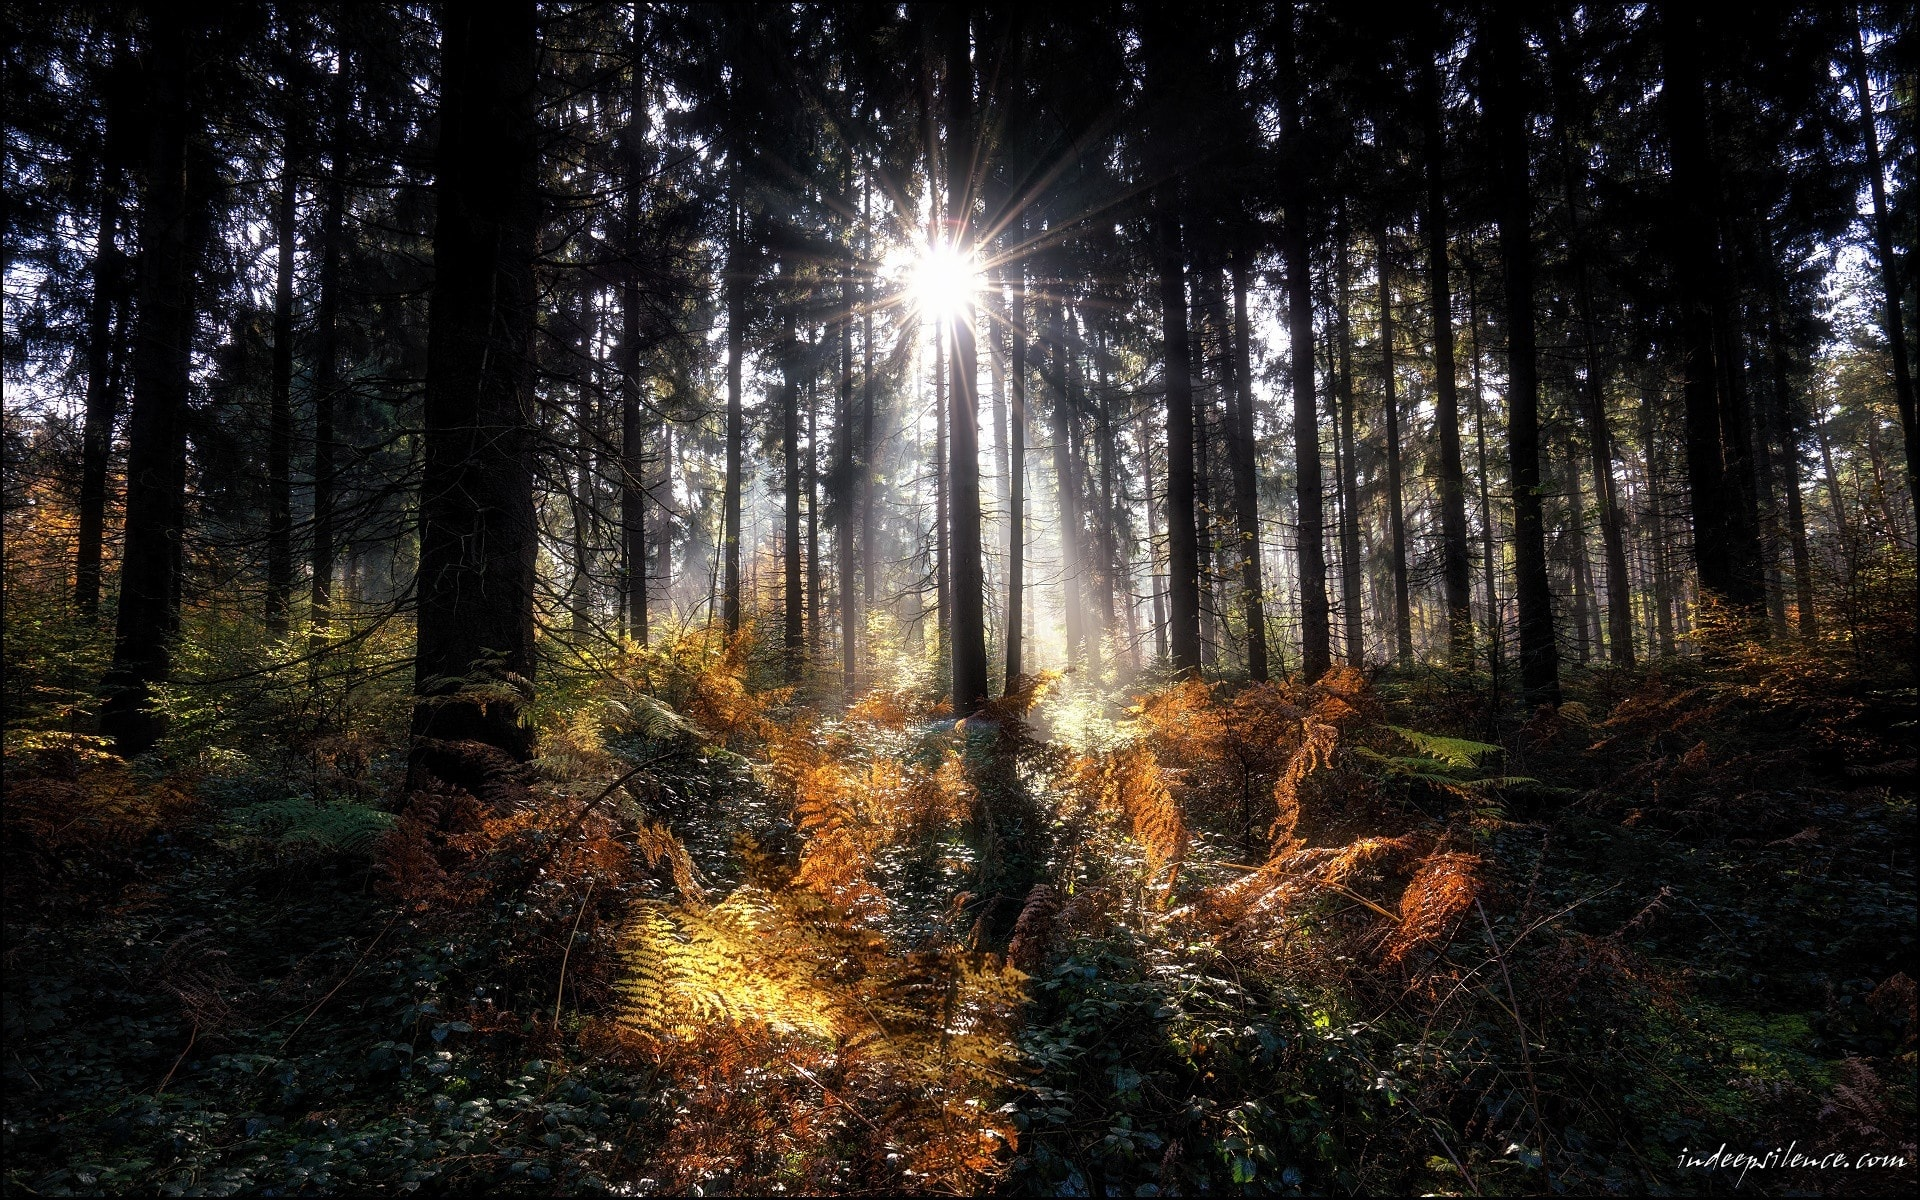 Into The Forest – Indeepsilence